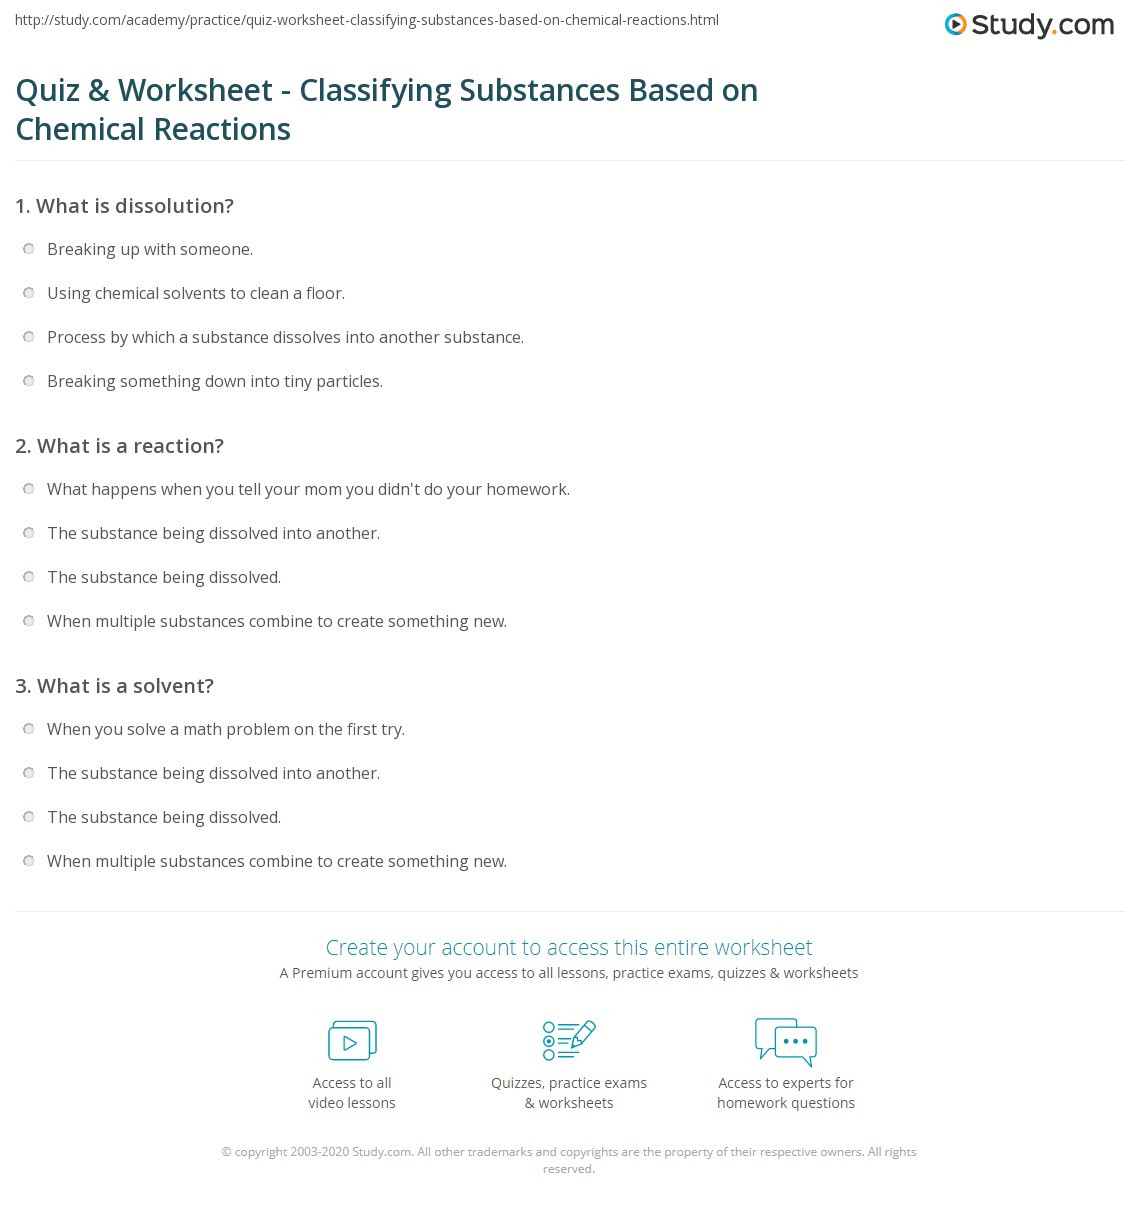 Classification Of Chemical Reactions Worksheet Quiz & Worksheet Classifying Substances Based On Chemical